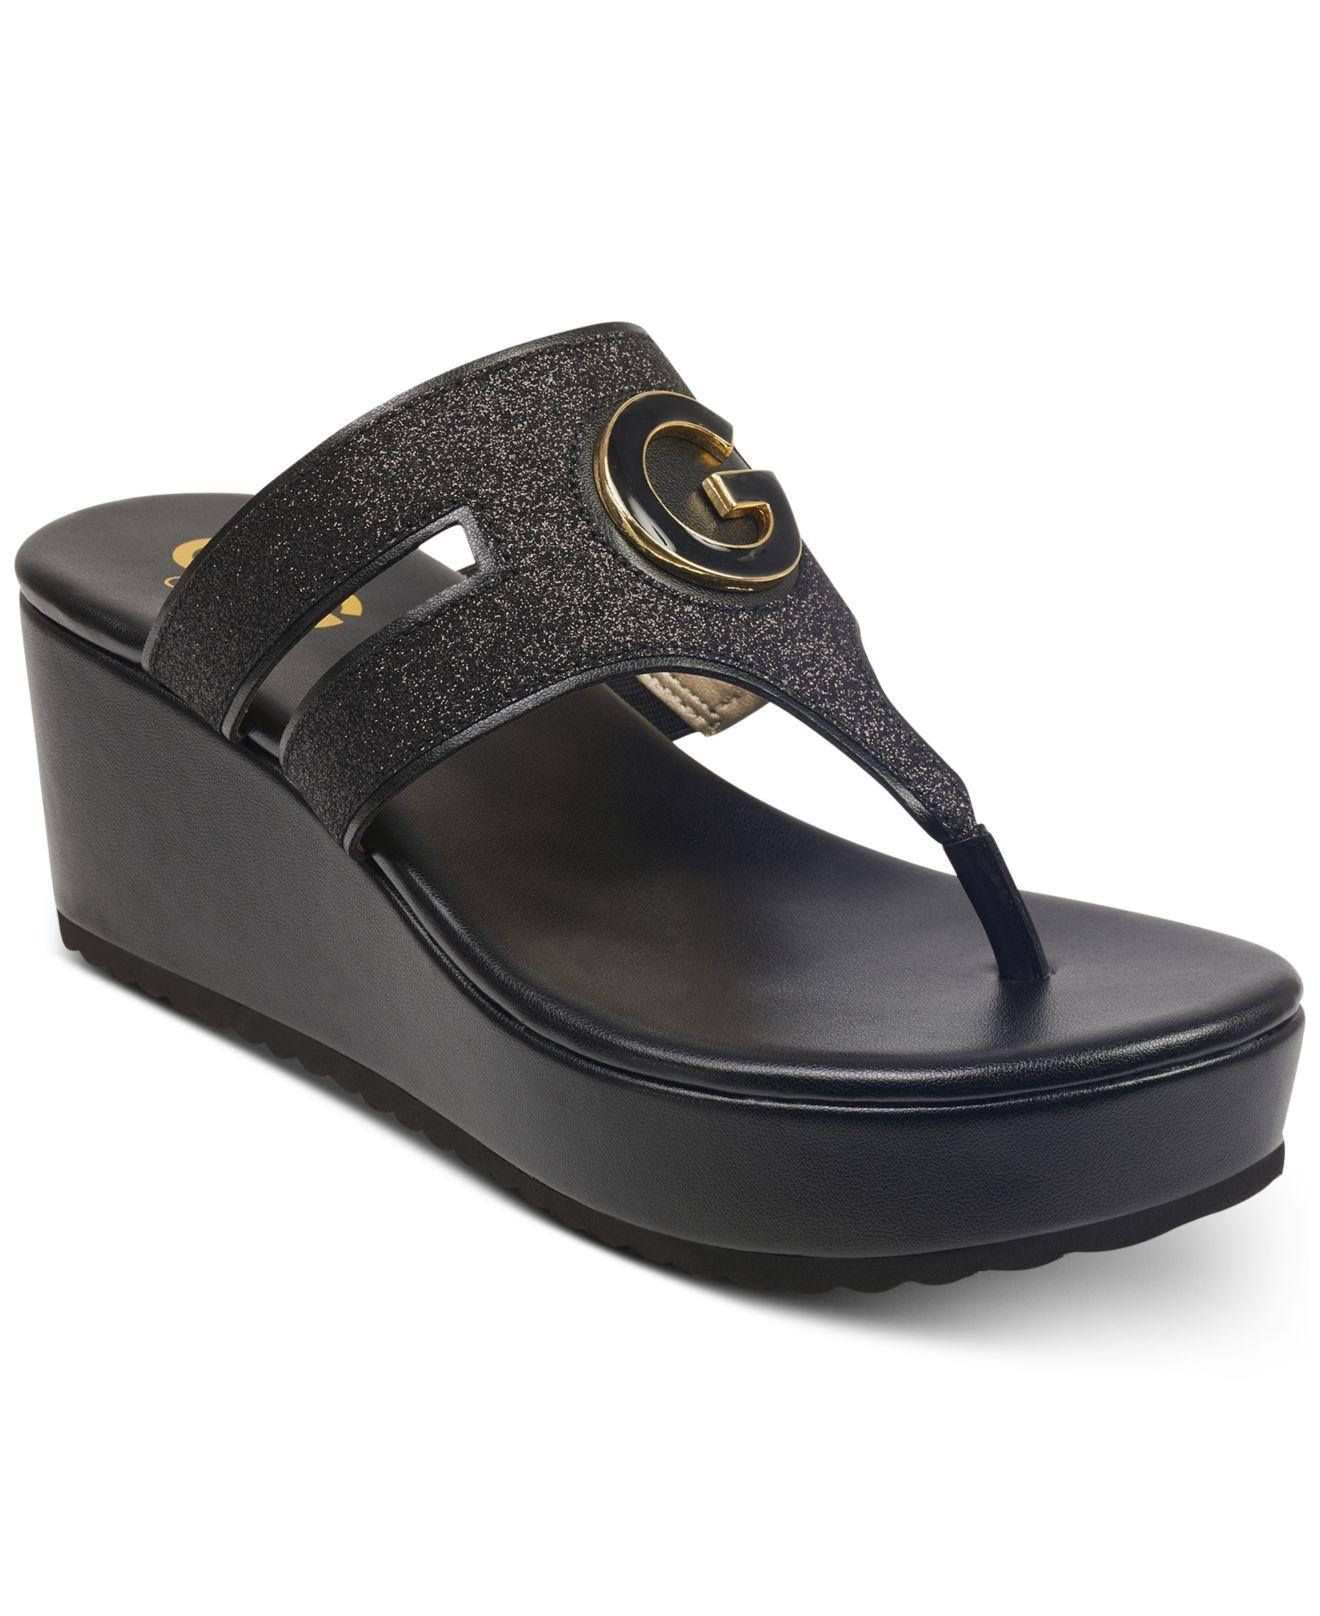 d848e6b25 Lyst - G by Guess Gandy Wedge Sandals in Black